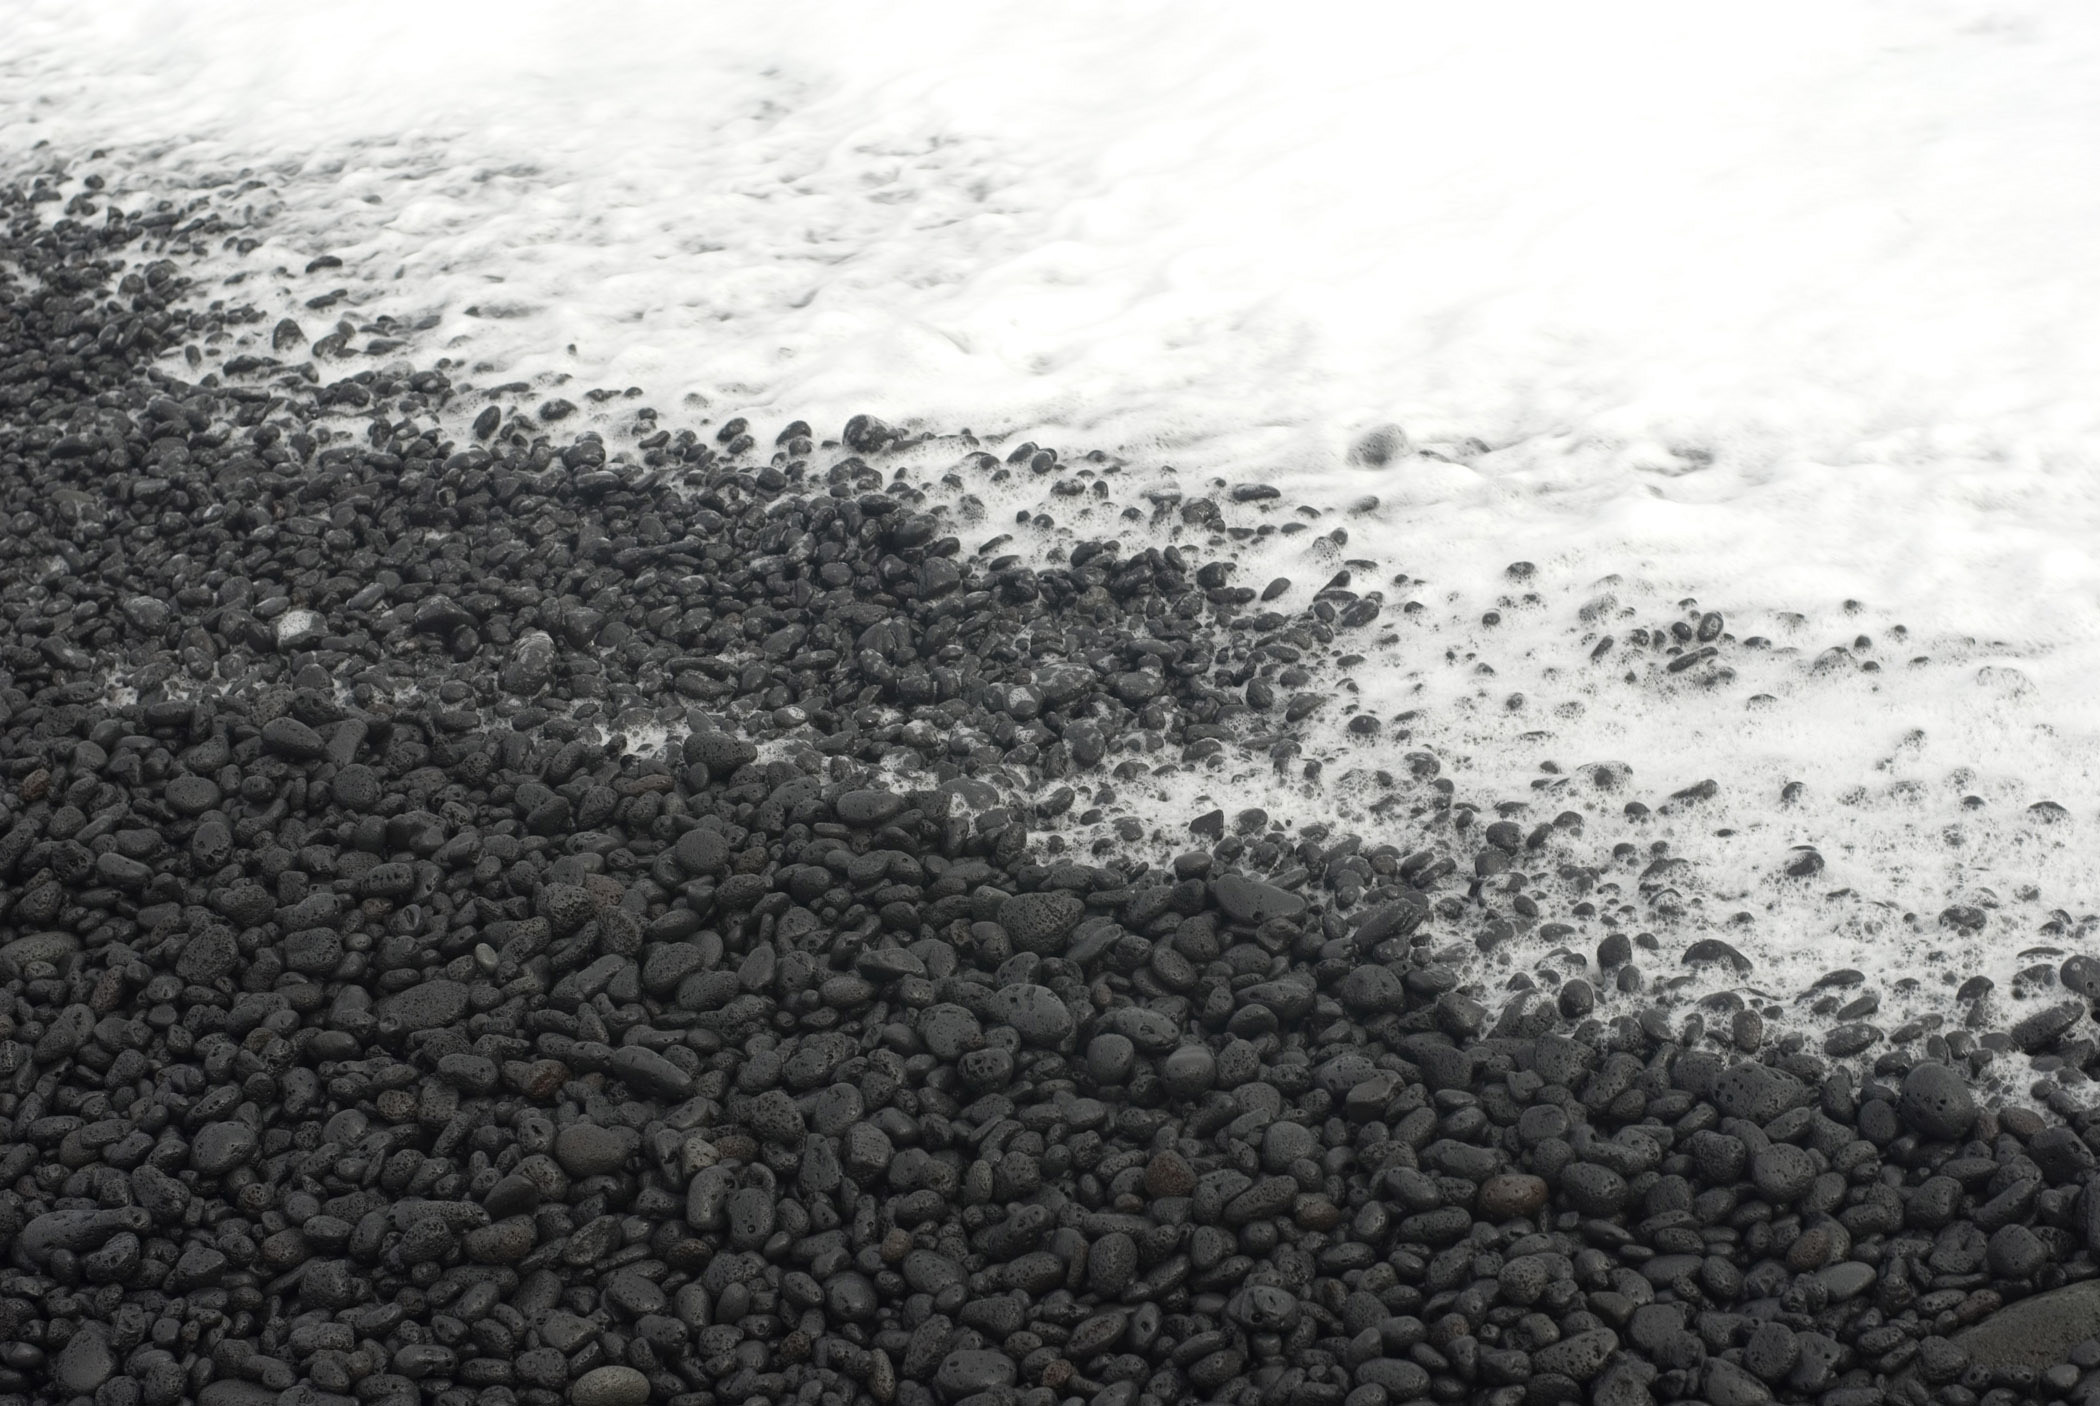 Close up Gray Scale Plenty Small Stones at Kalapana Beach Shore